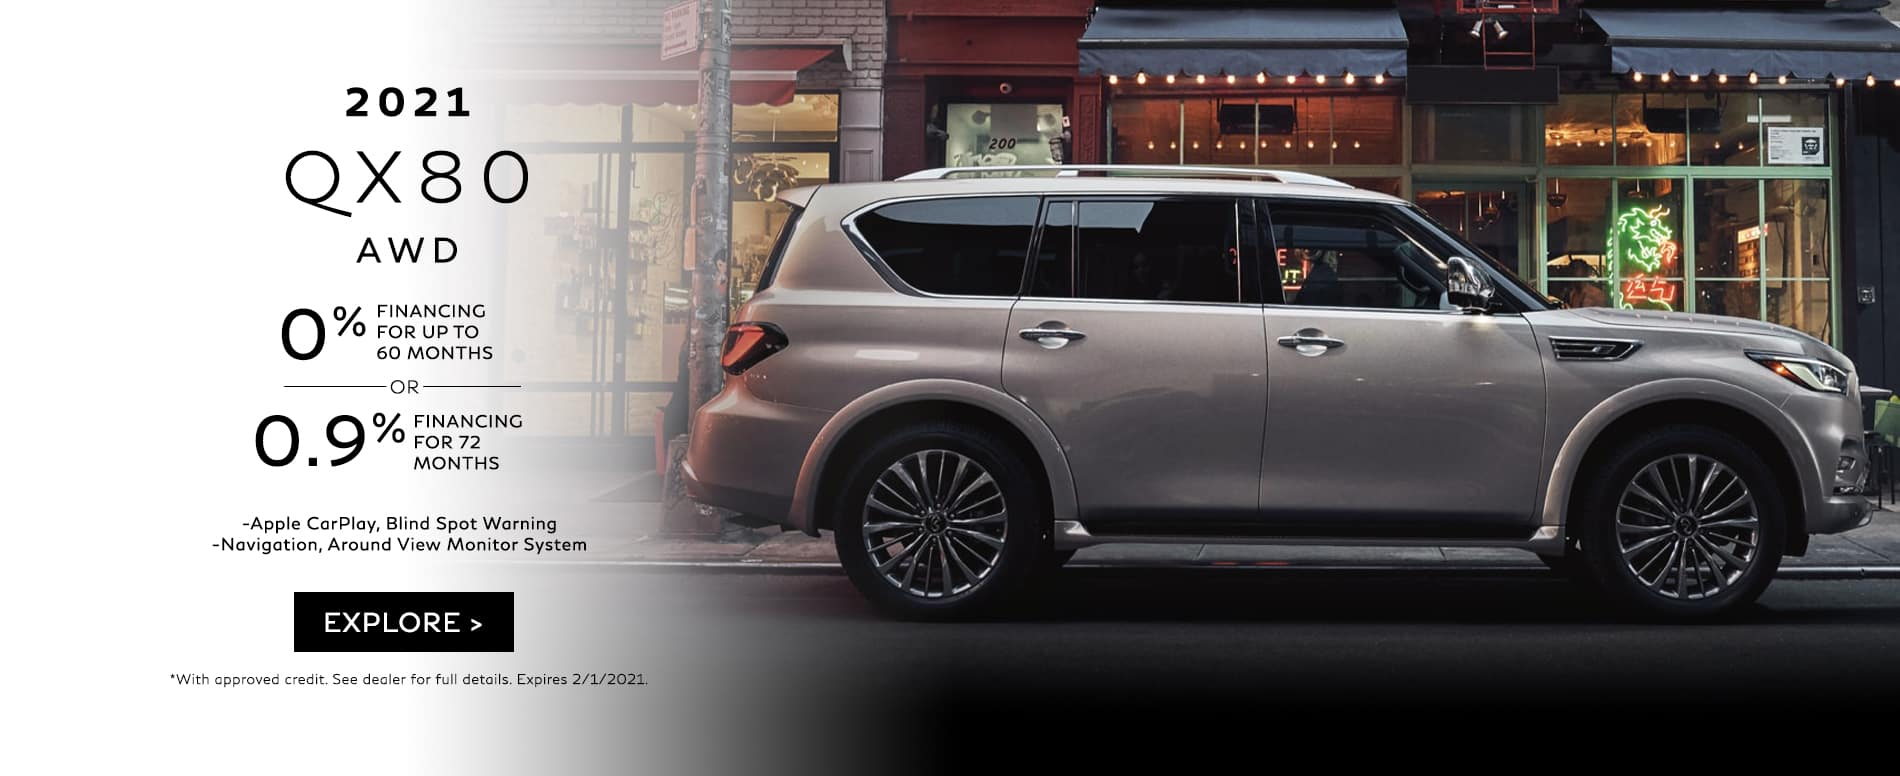 2021 QX80 Lease Offer